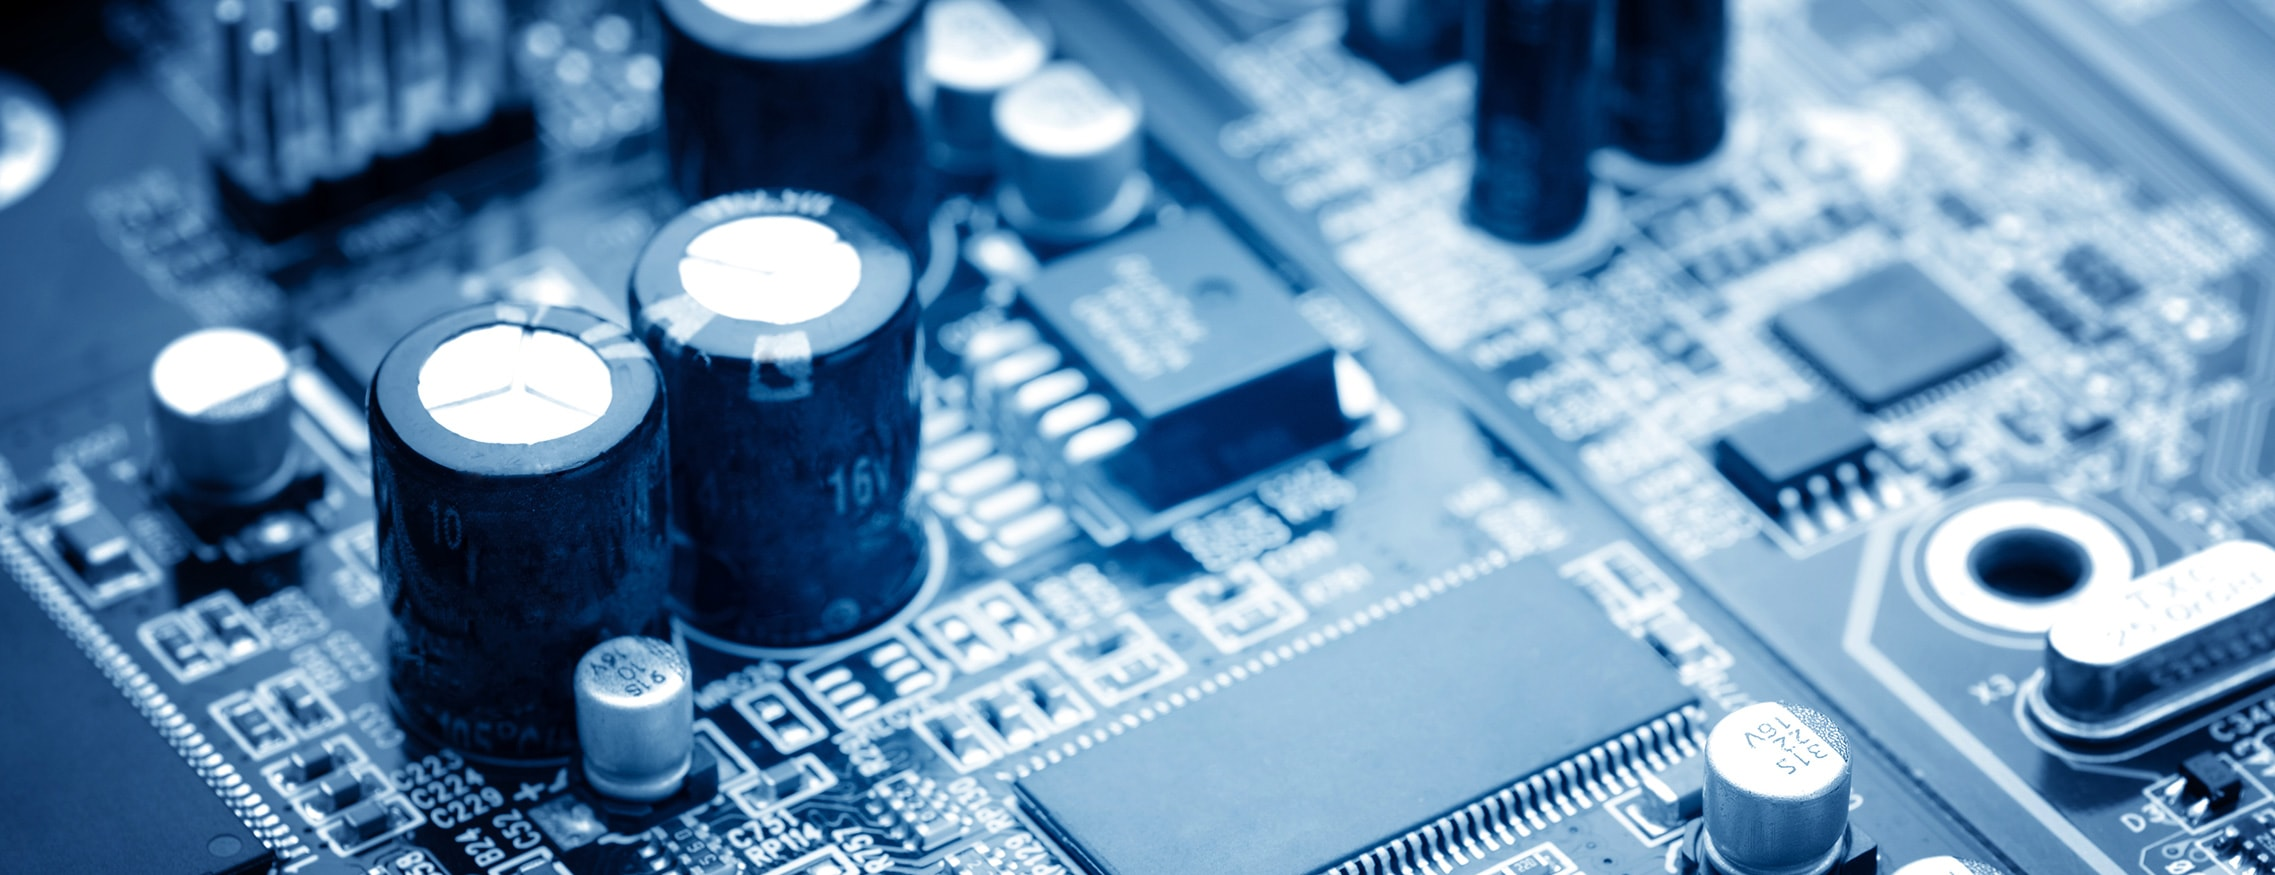 Best Electronics Workshops for Engineering Students